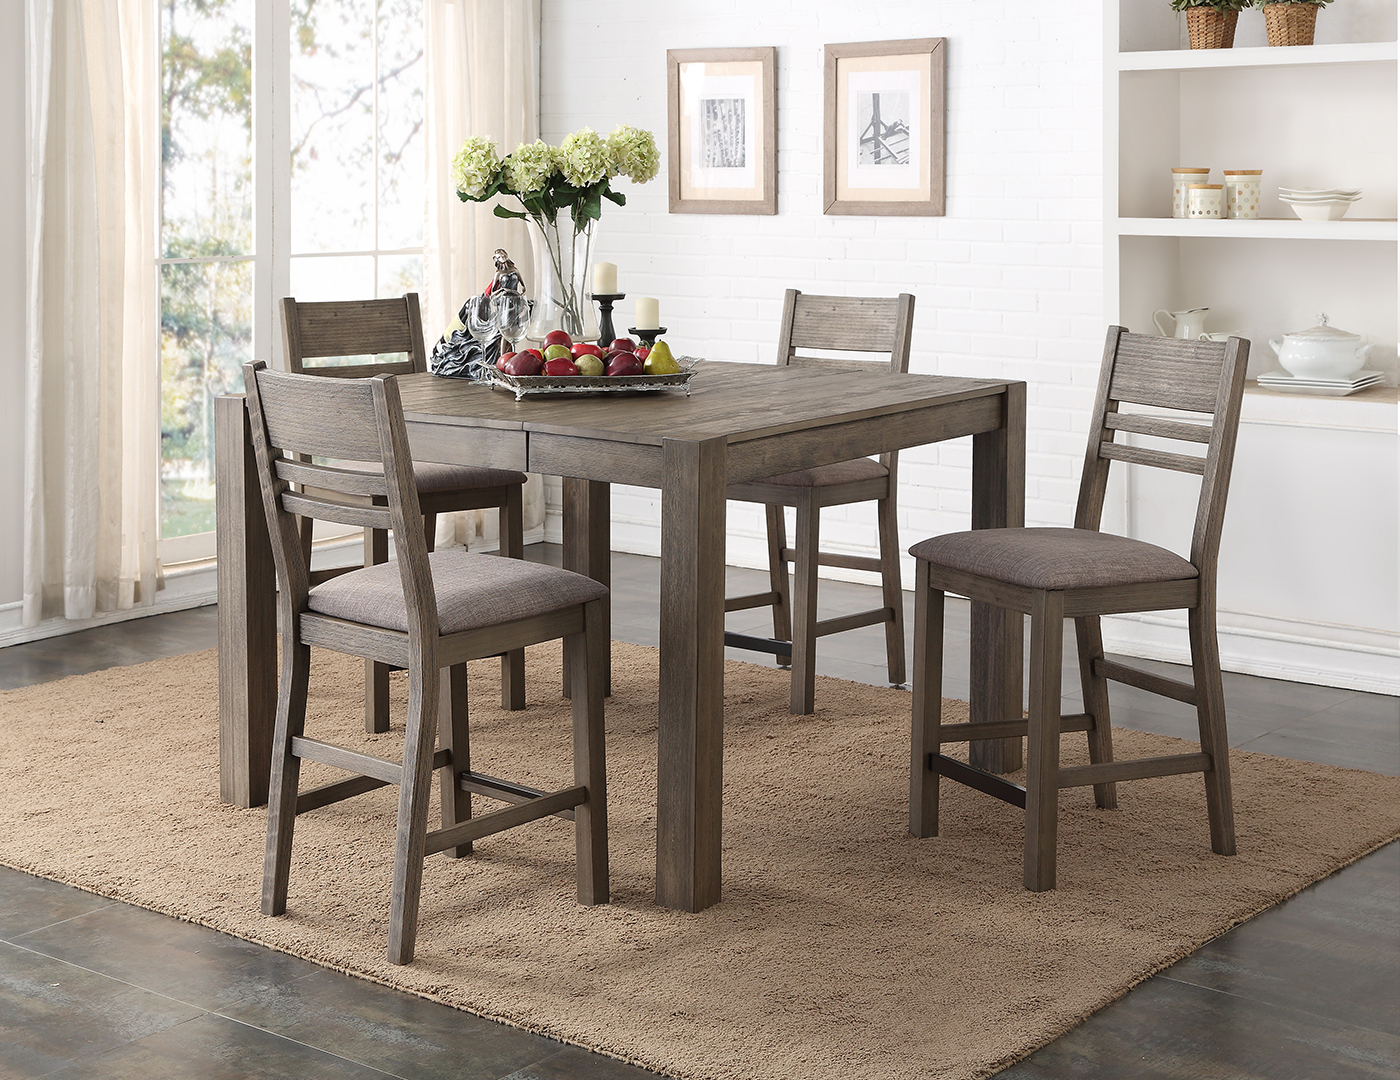 Hillcrest Counter Height Dining Table